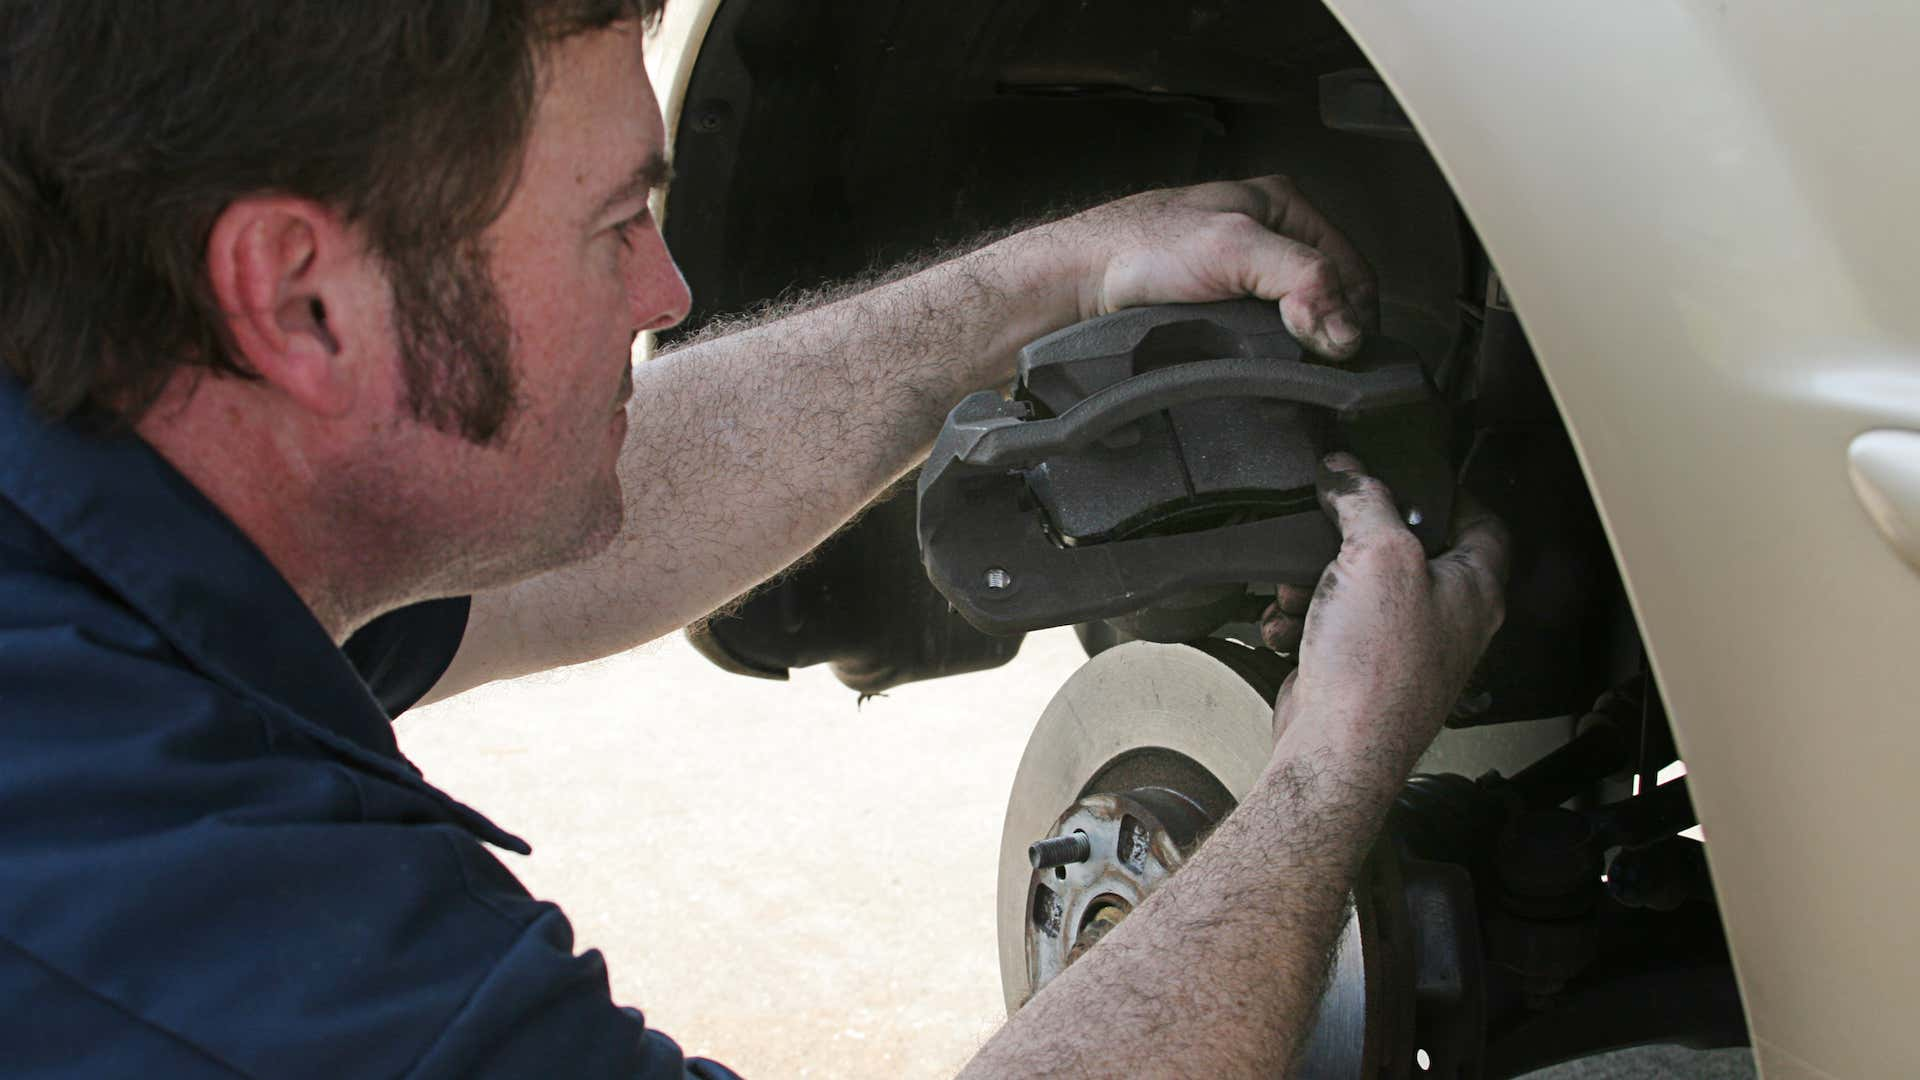 You don't need to be a pro to fix your brakes.